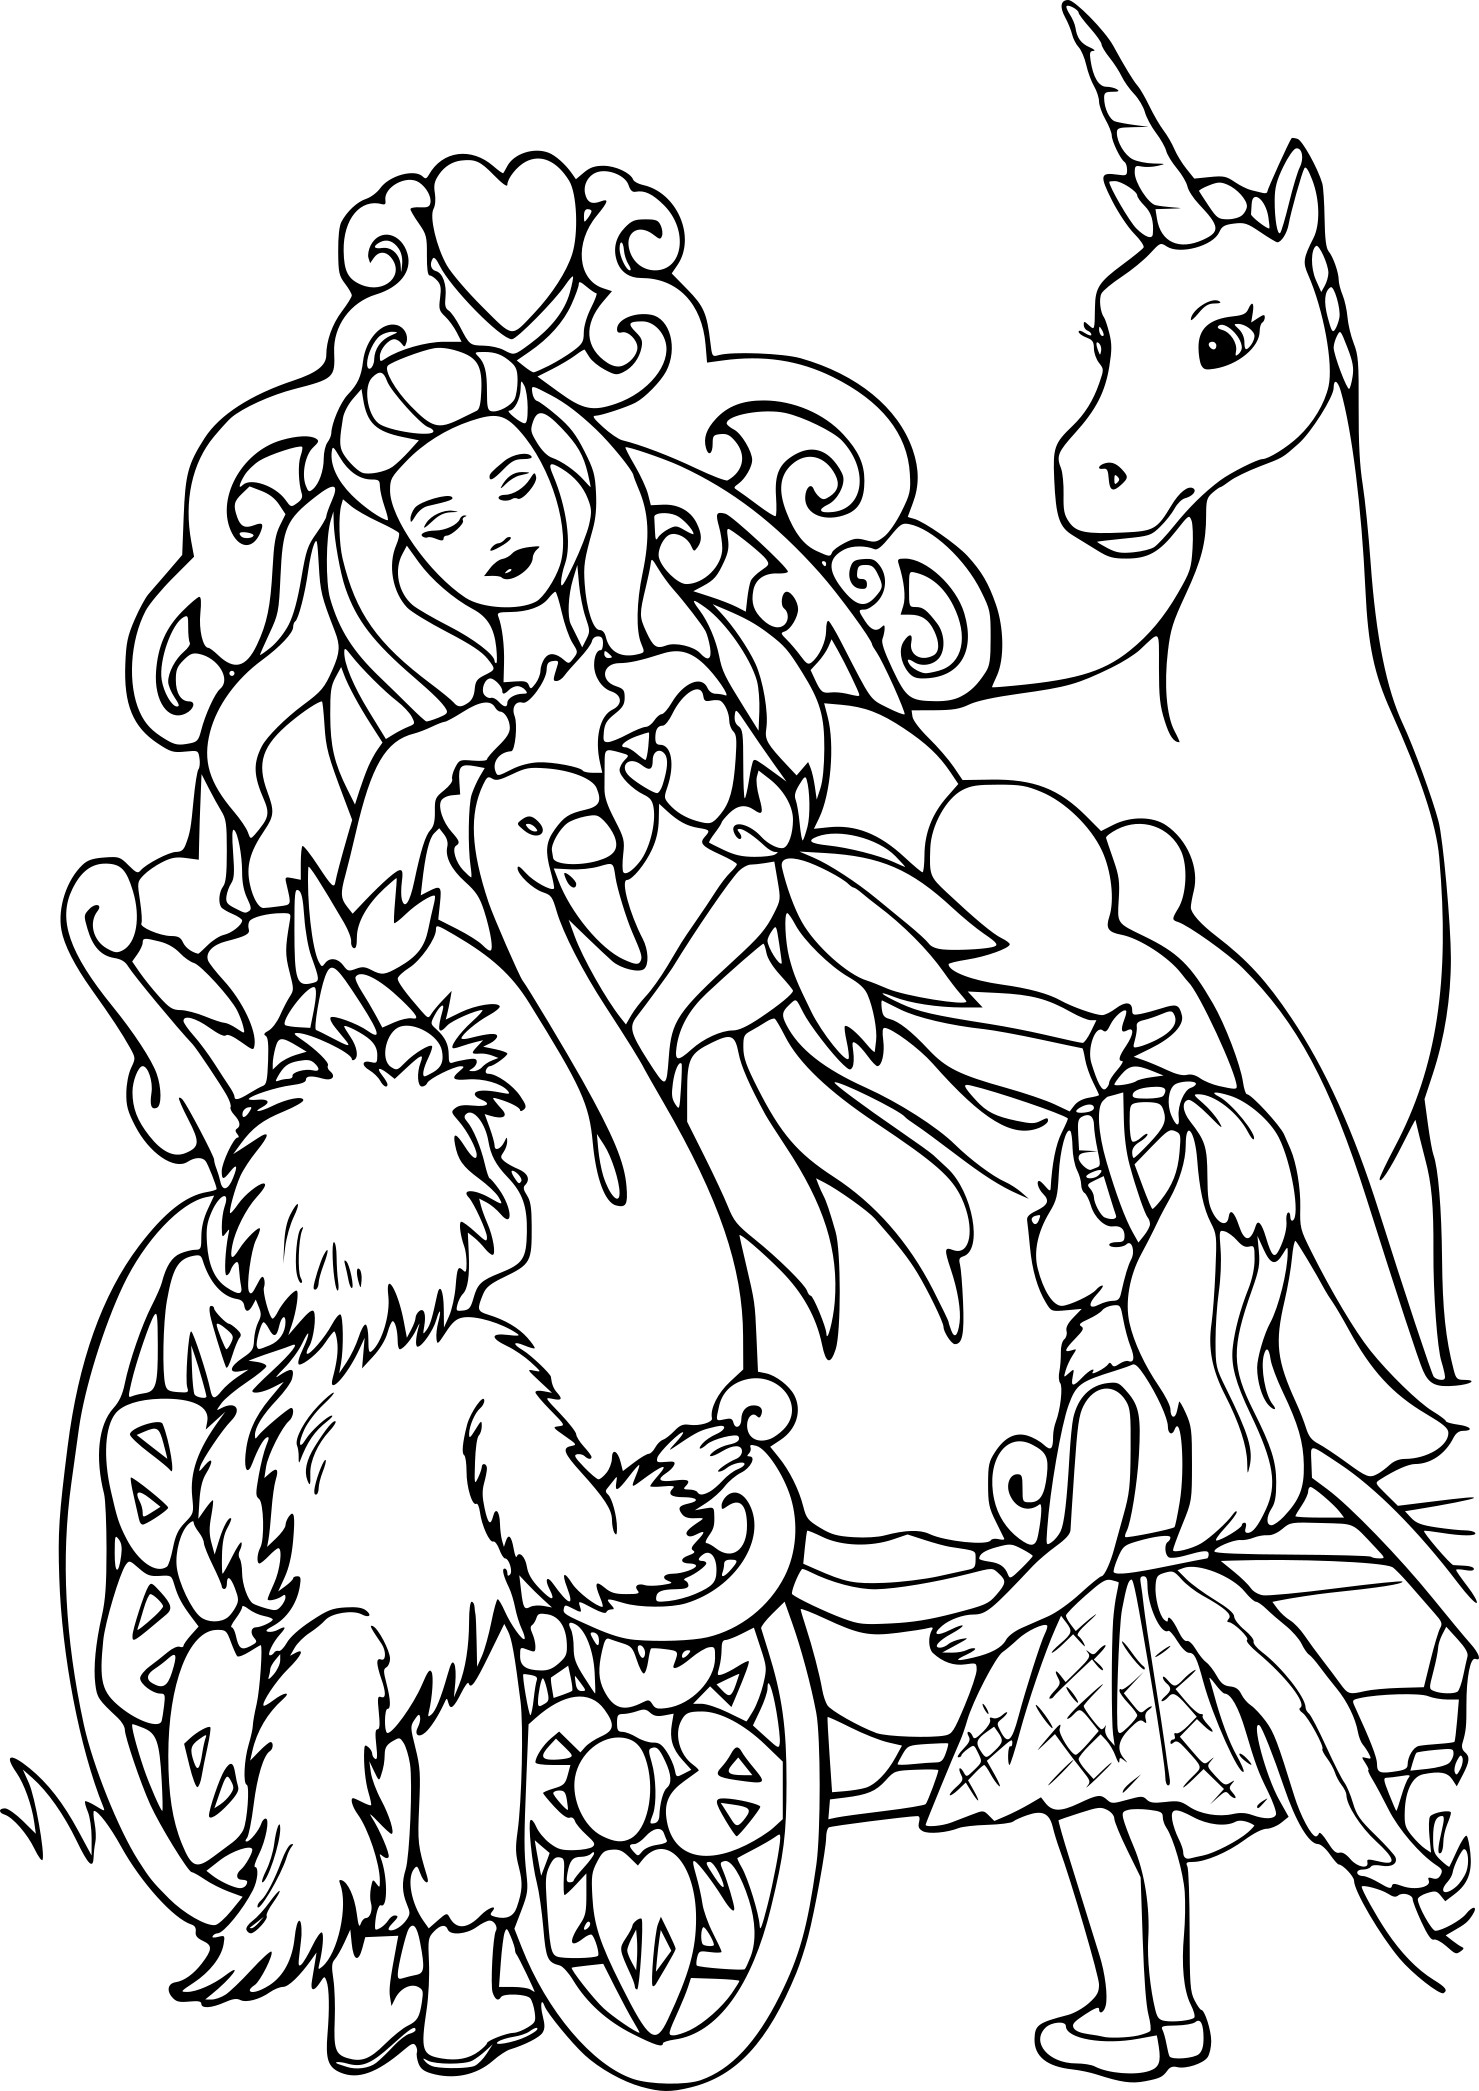 Barbie unicorn with princess Coloring Page